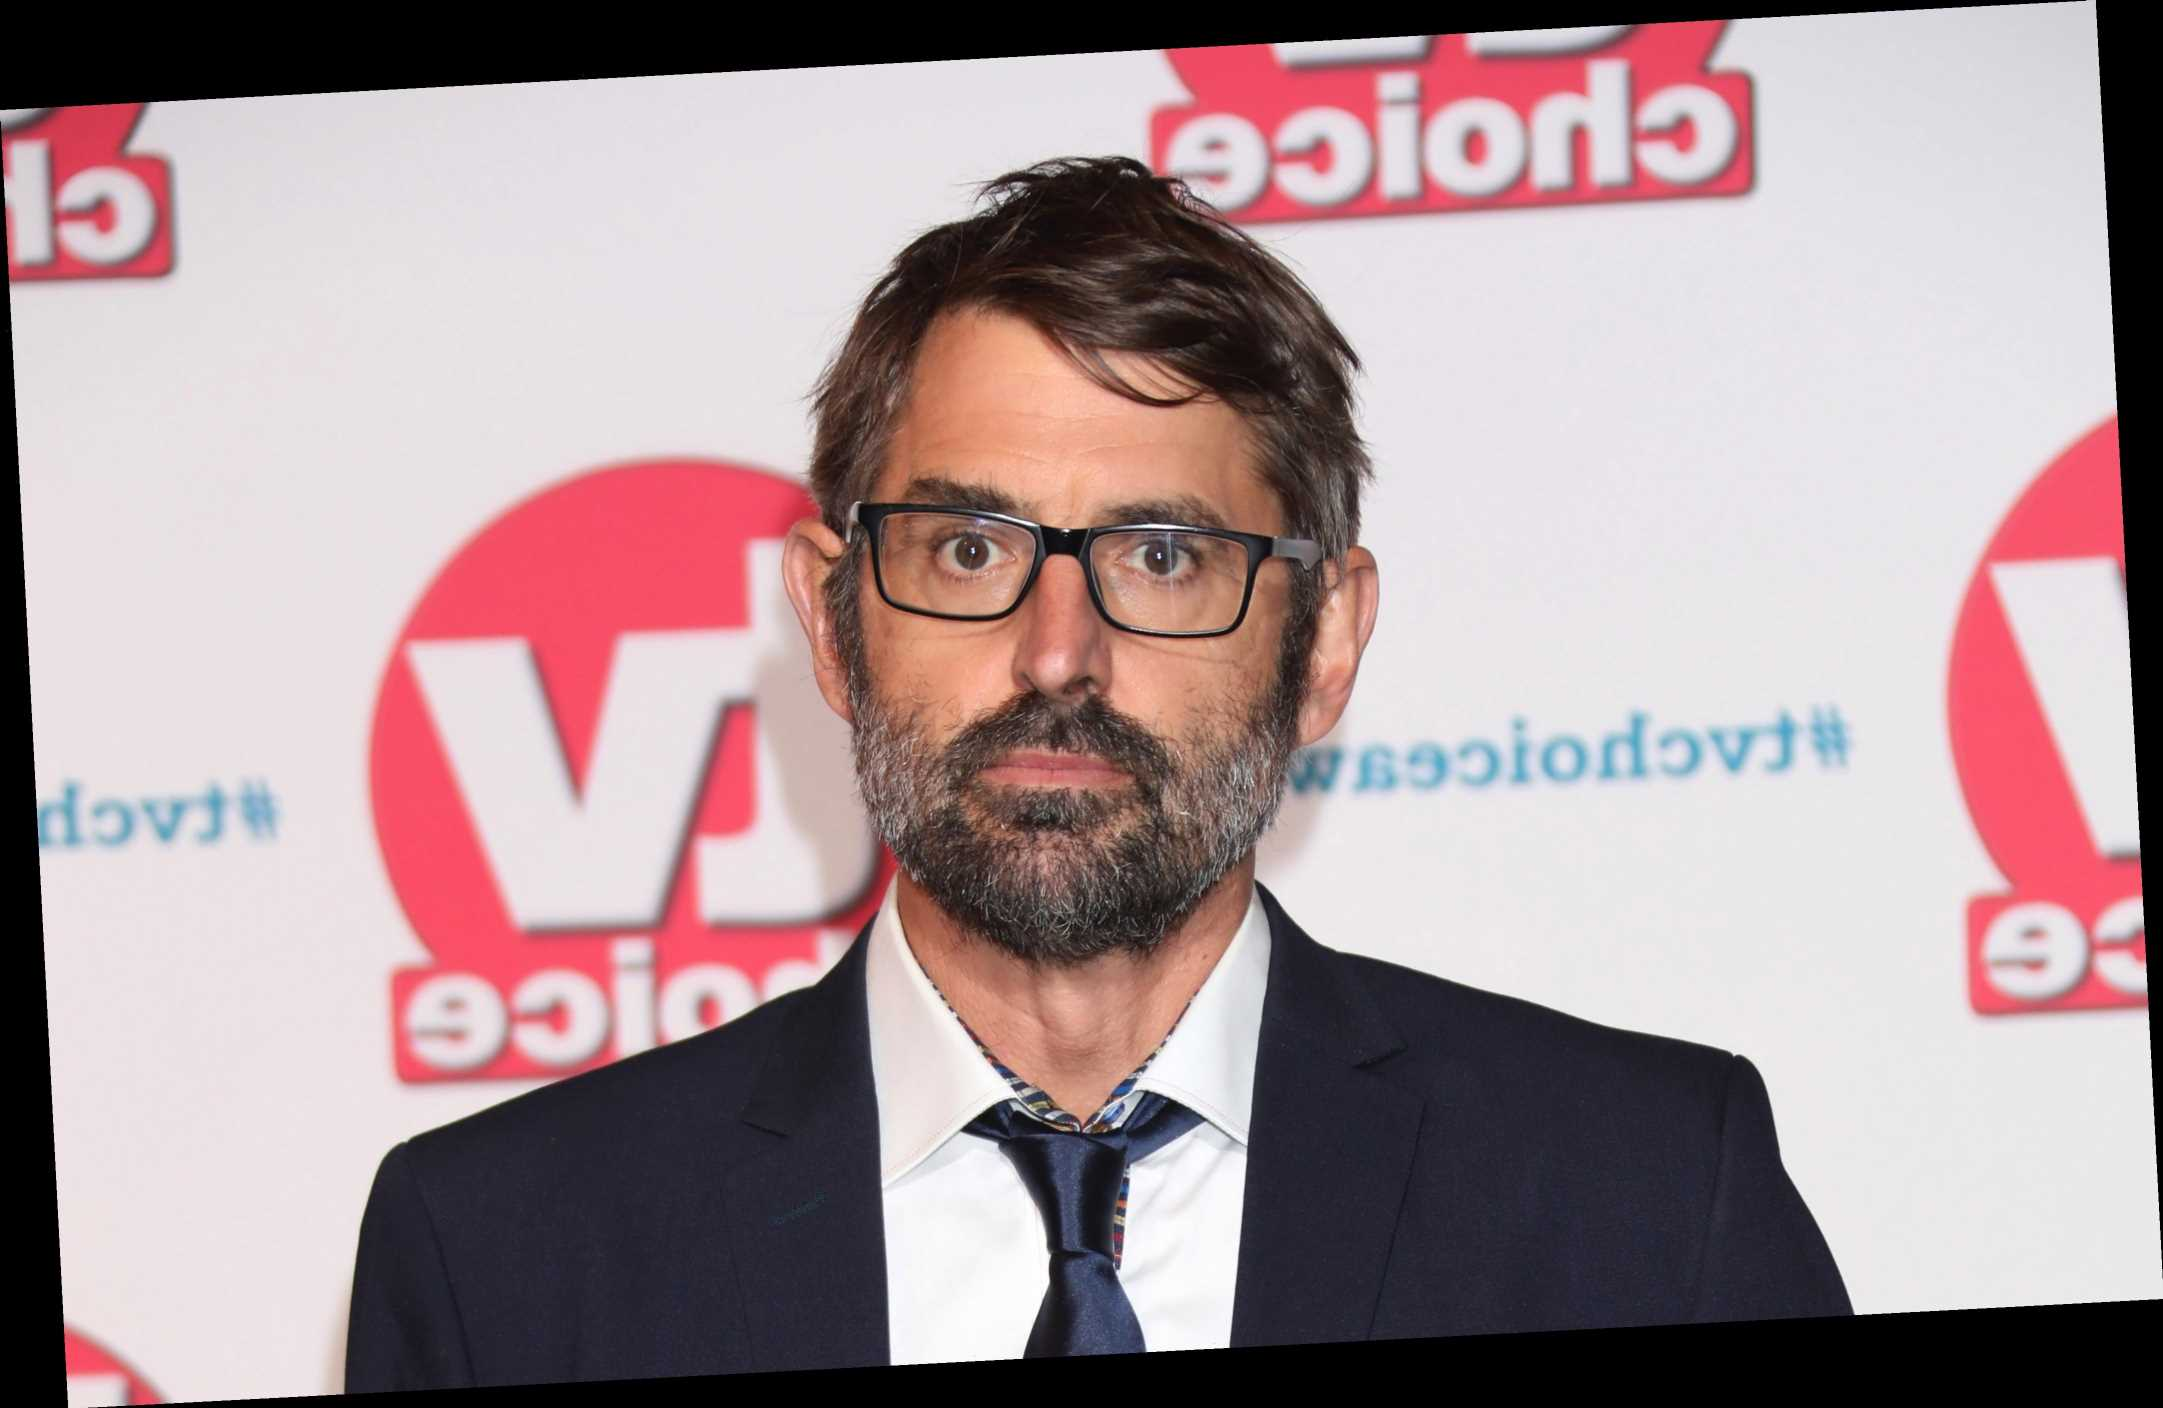 Who is Louis Theroux? Net worth, wife, brother and most controversial documentaries